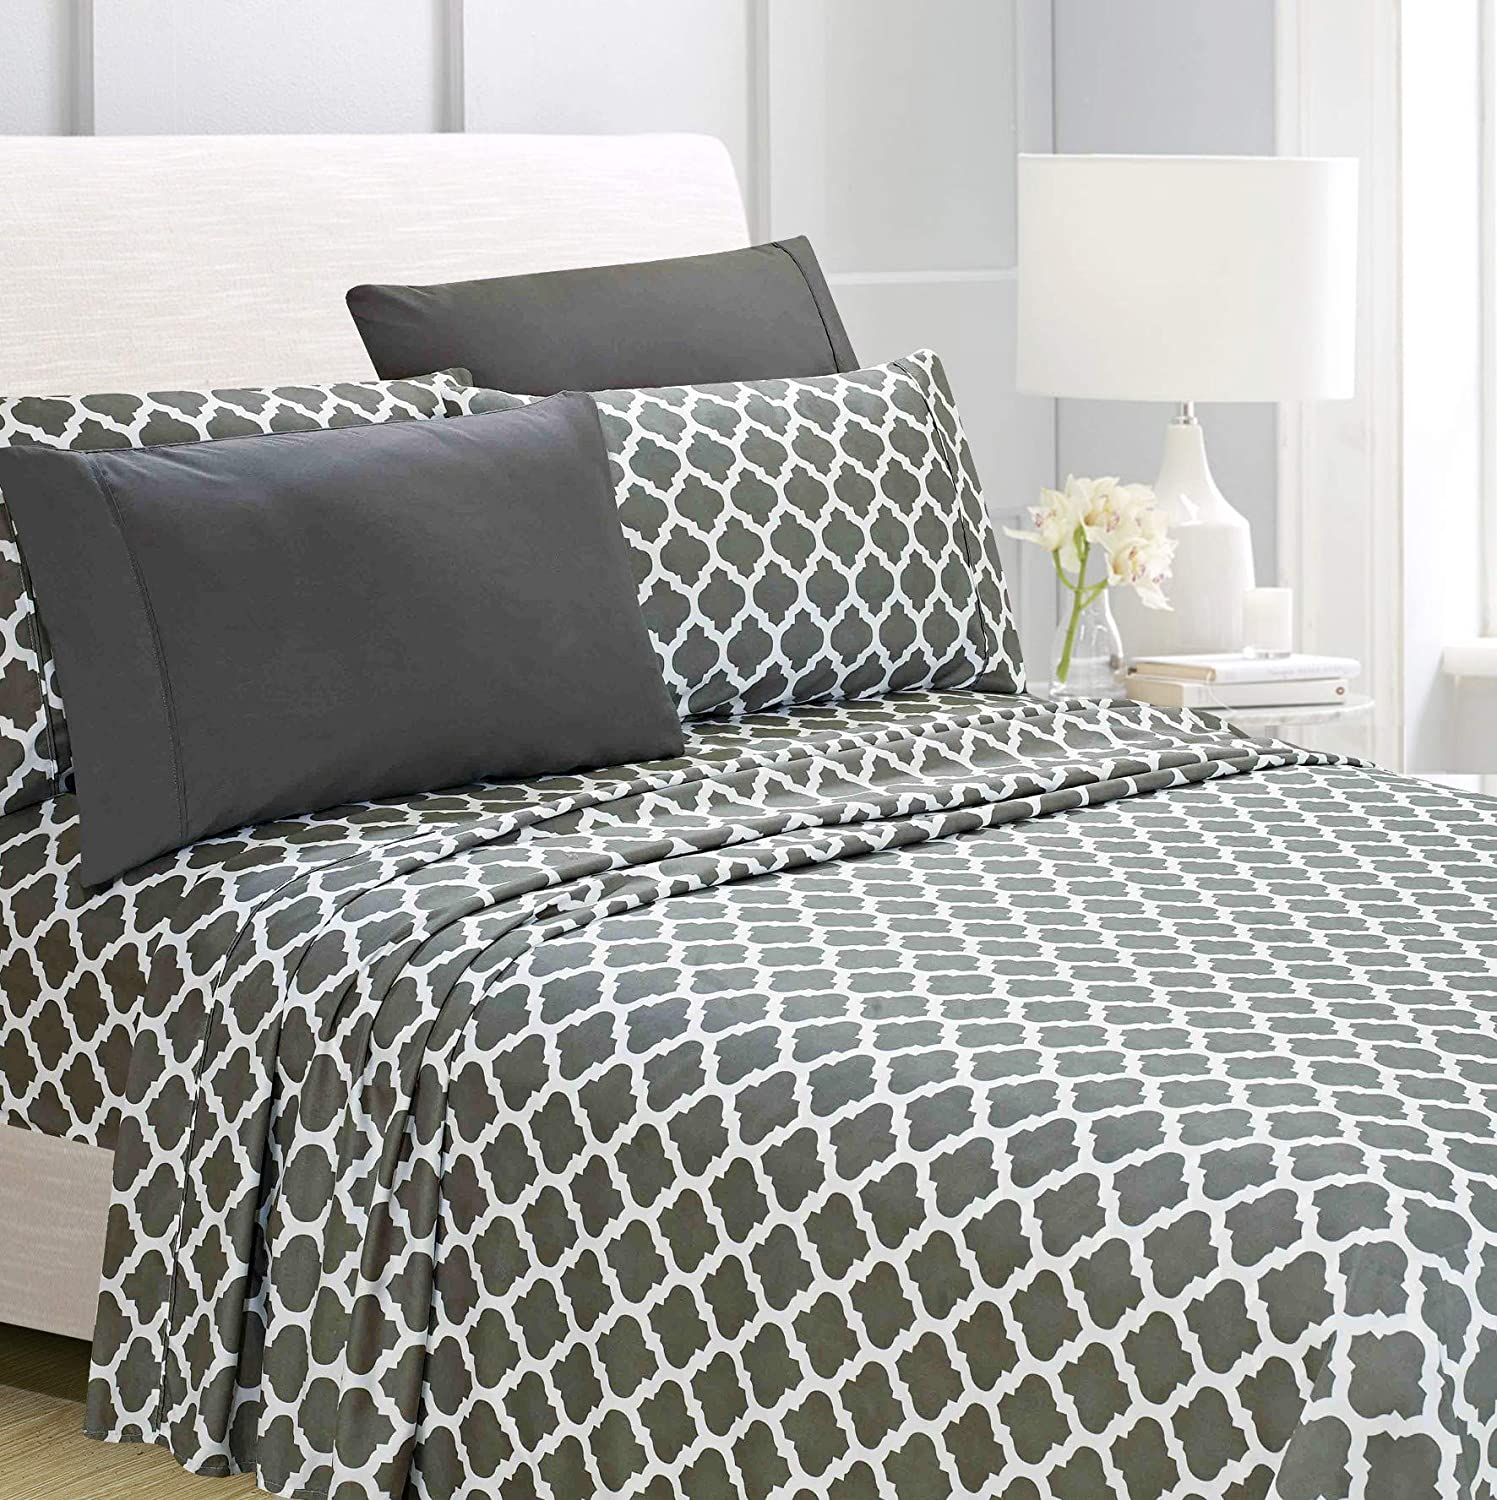 "American Home Collection 4 Piece Bed Sheet Set Super Soft Brushed Microfiber - 14"" Deep Pocket - Wrinkle Resistant - Hypoallergenic (Twin, Gray Quatrefoil)"